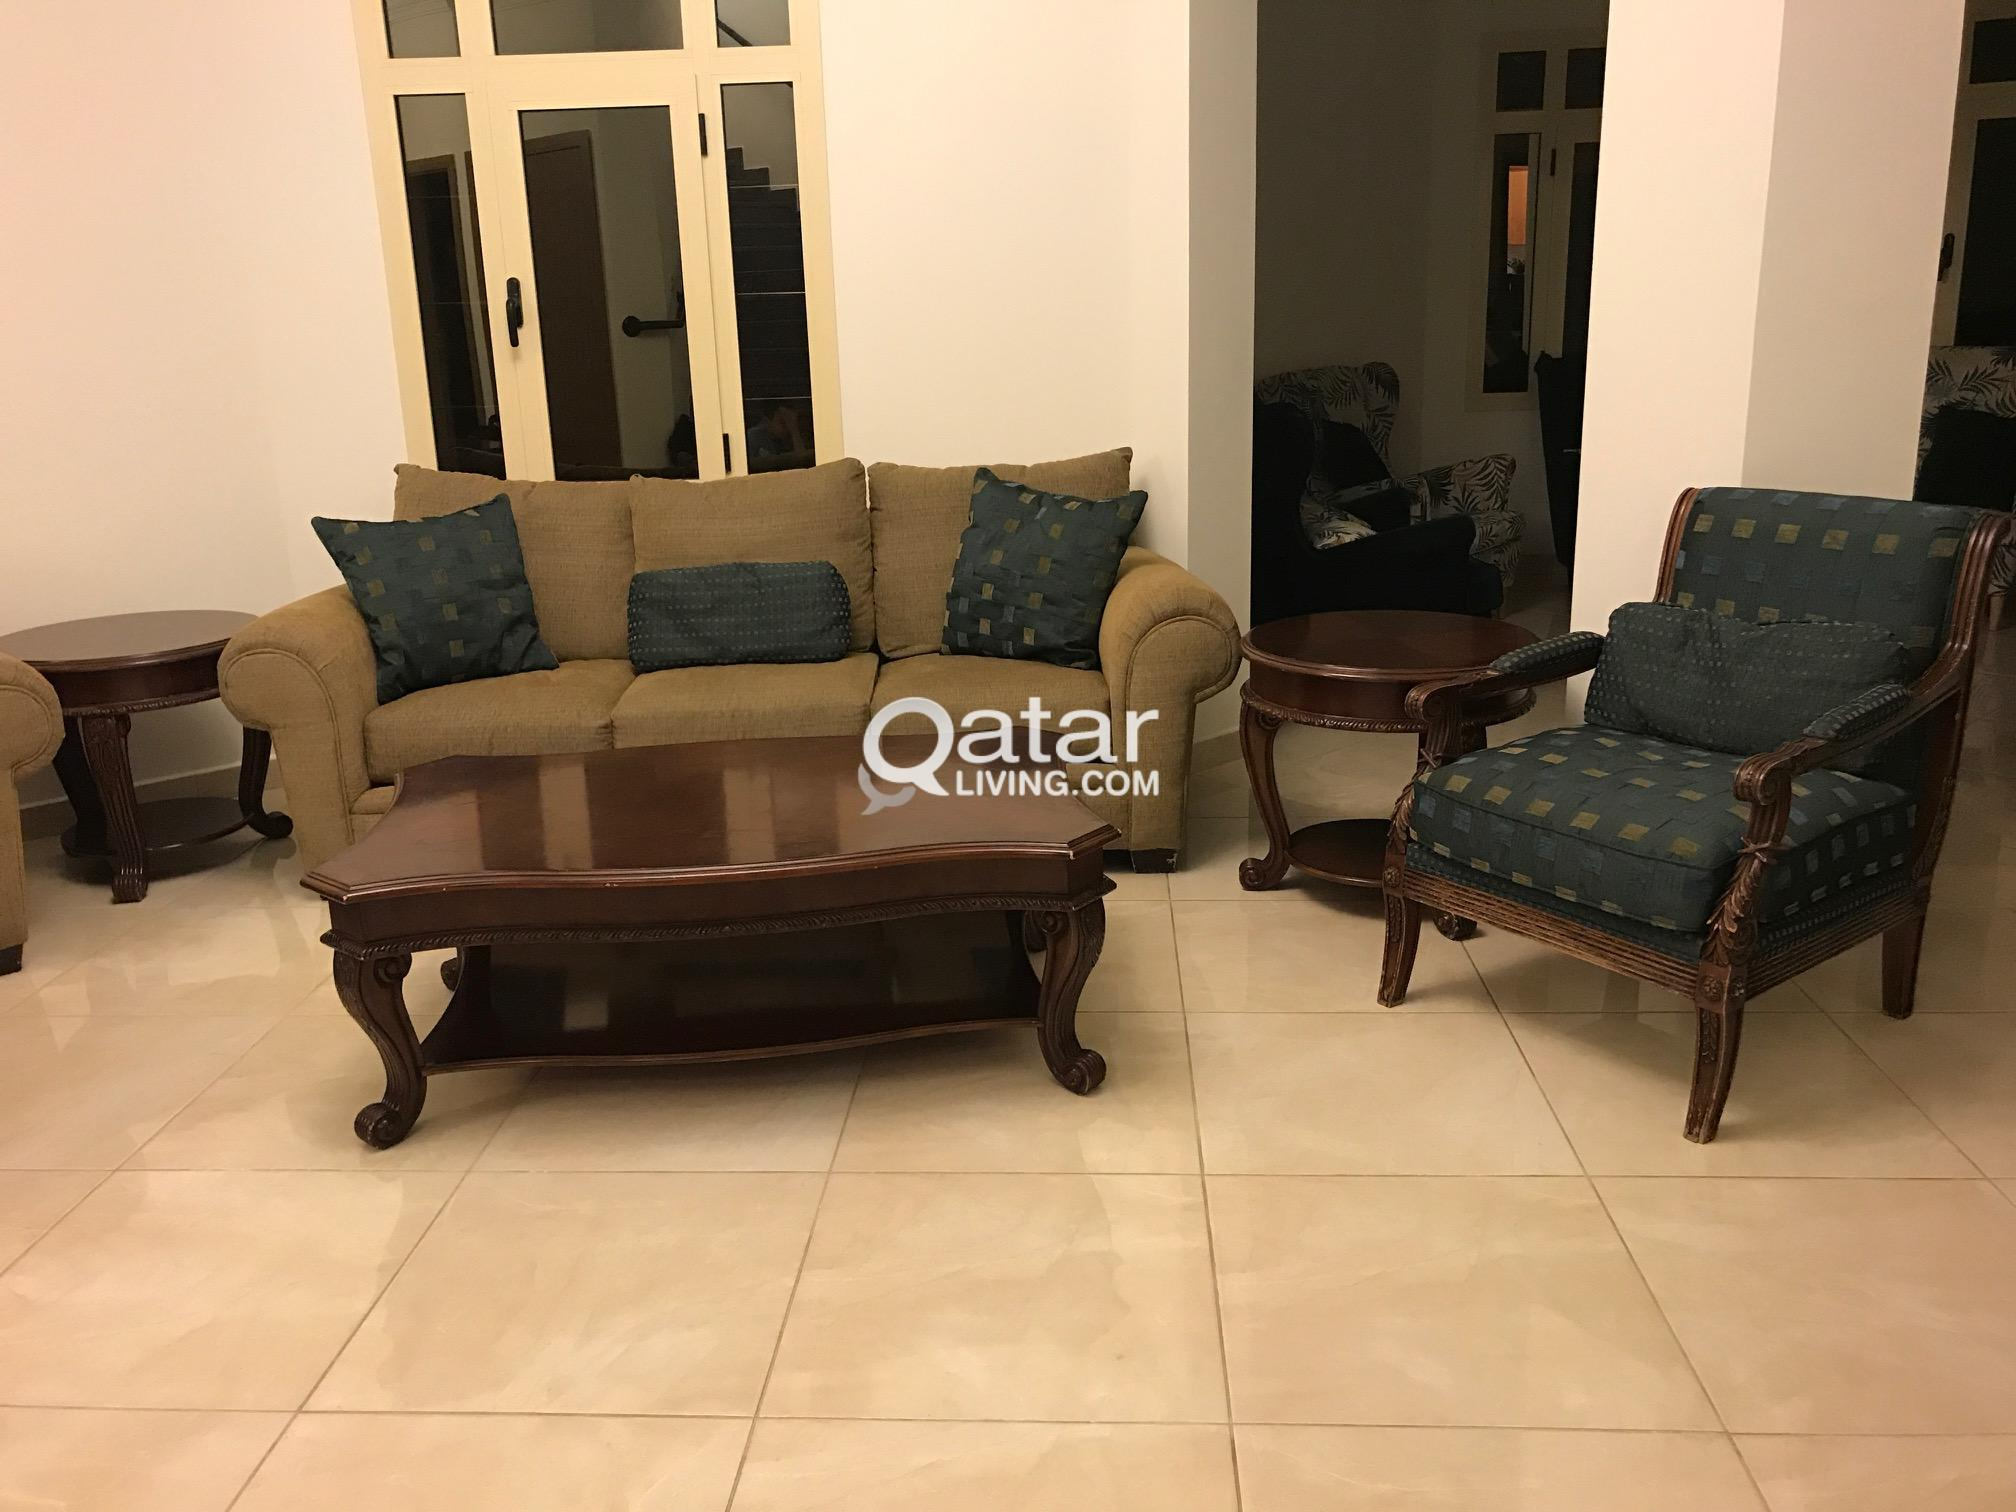 Living Room Furniture For Sale Qatar Living